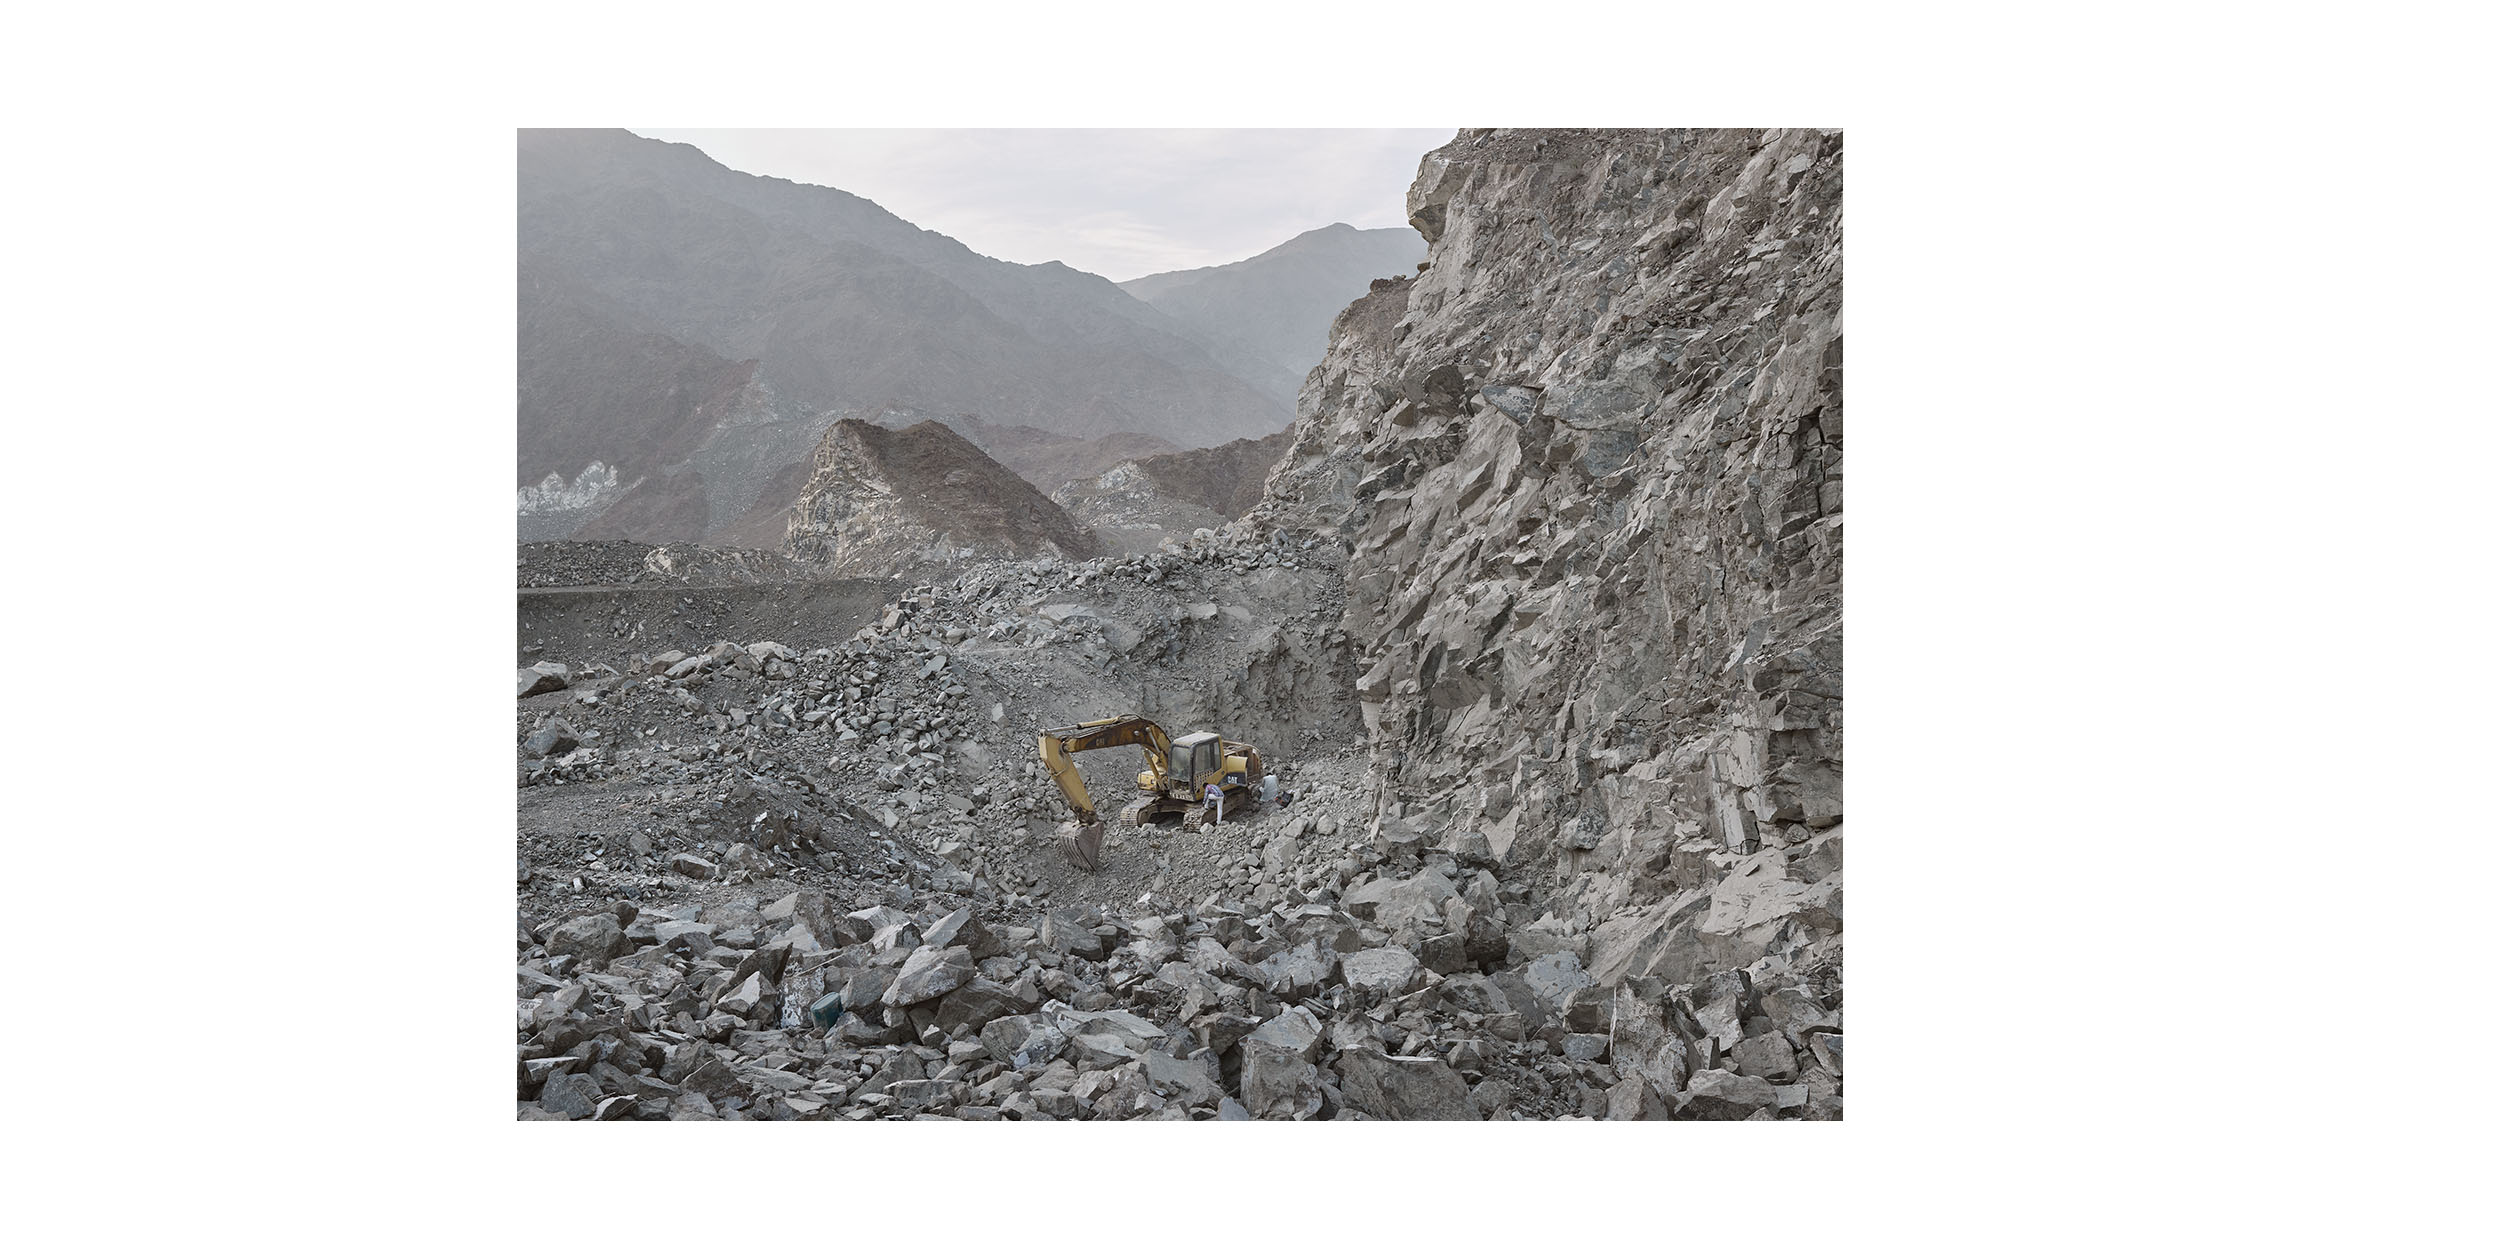 Quarry, Al Hayl, Fujairah, from the series 'The Edge'